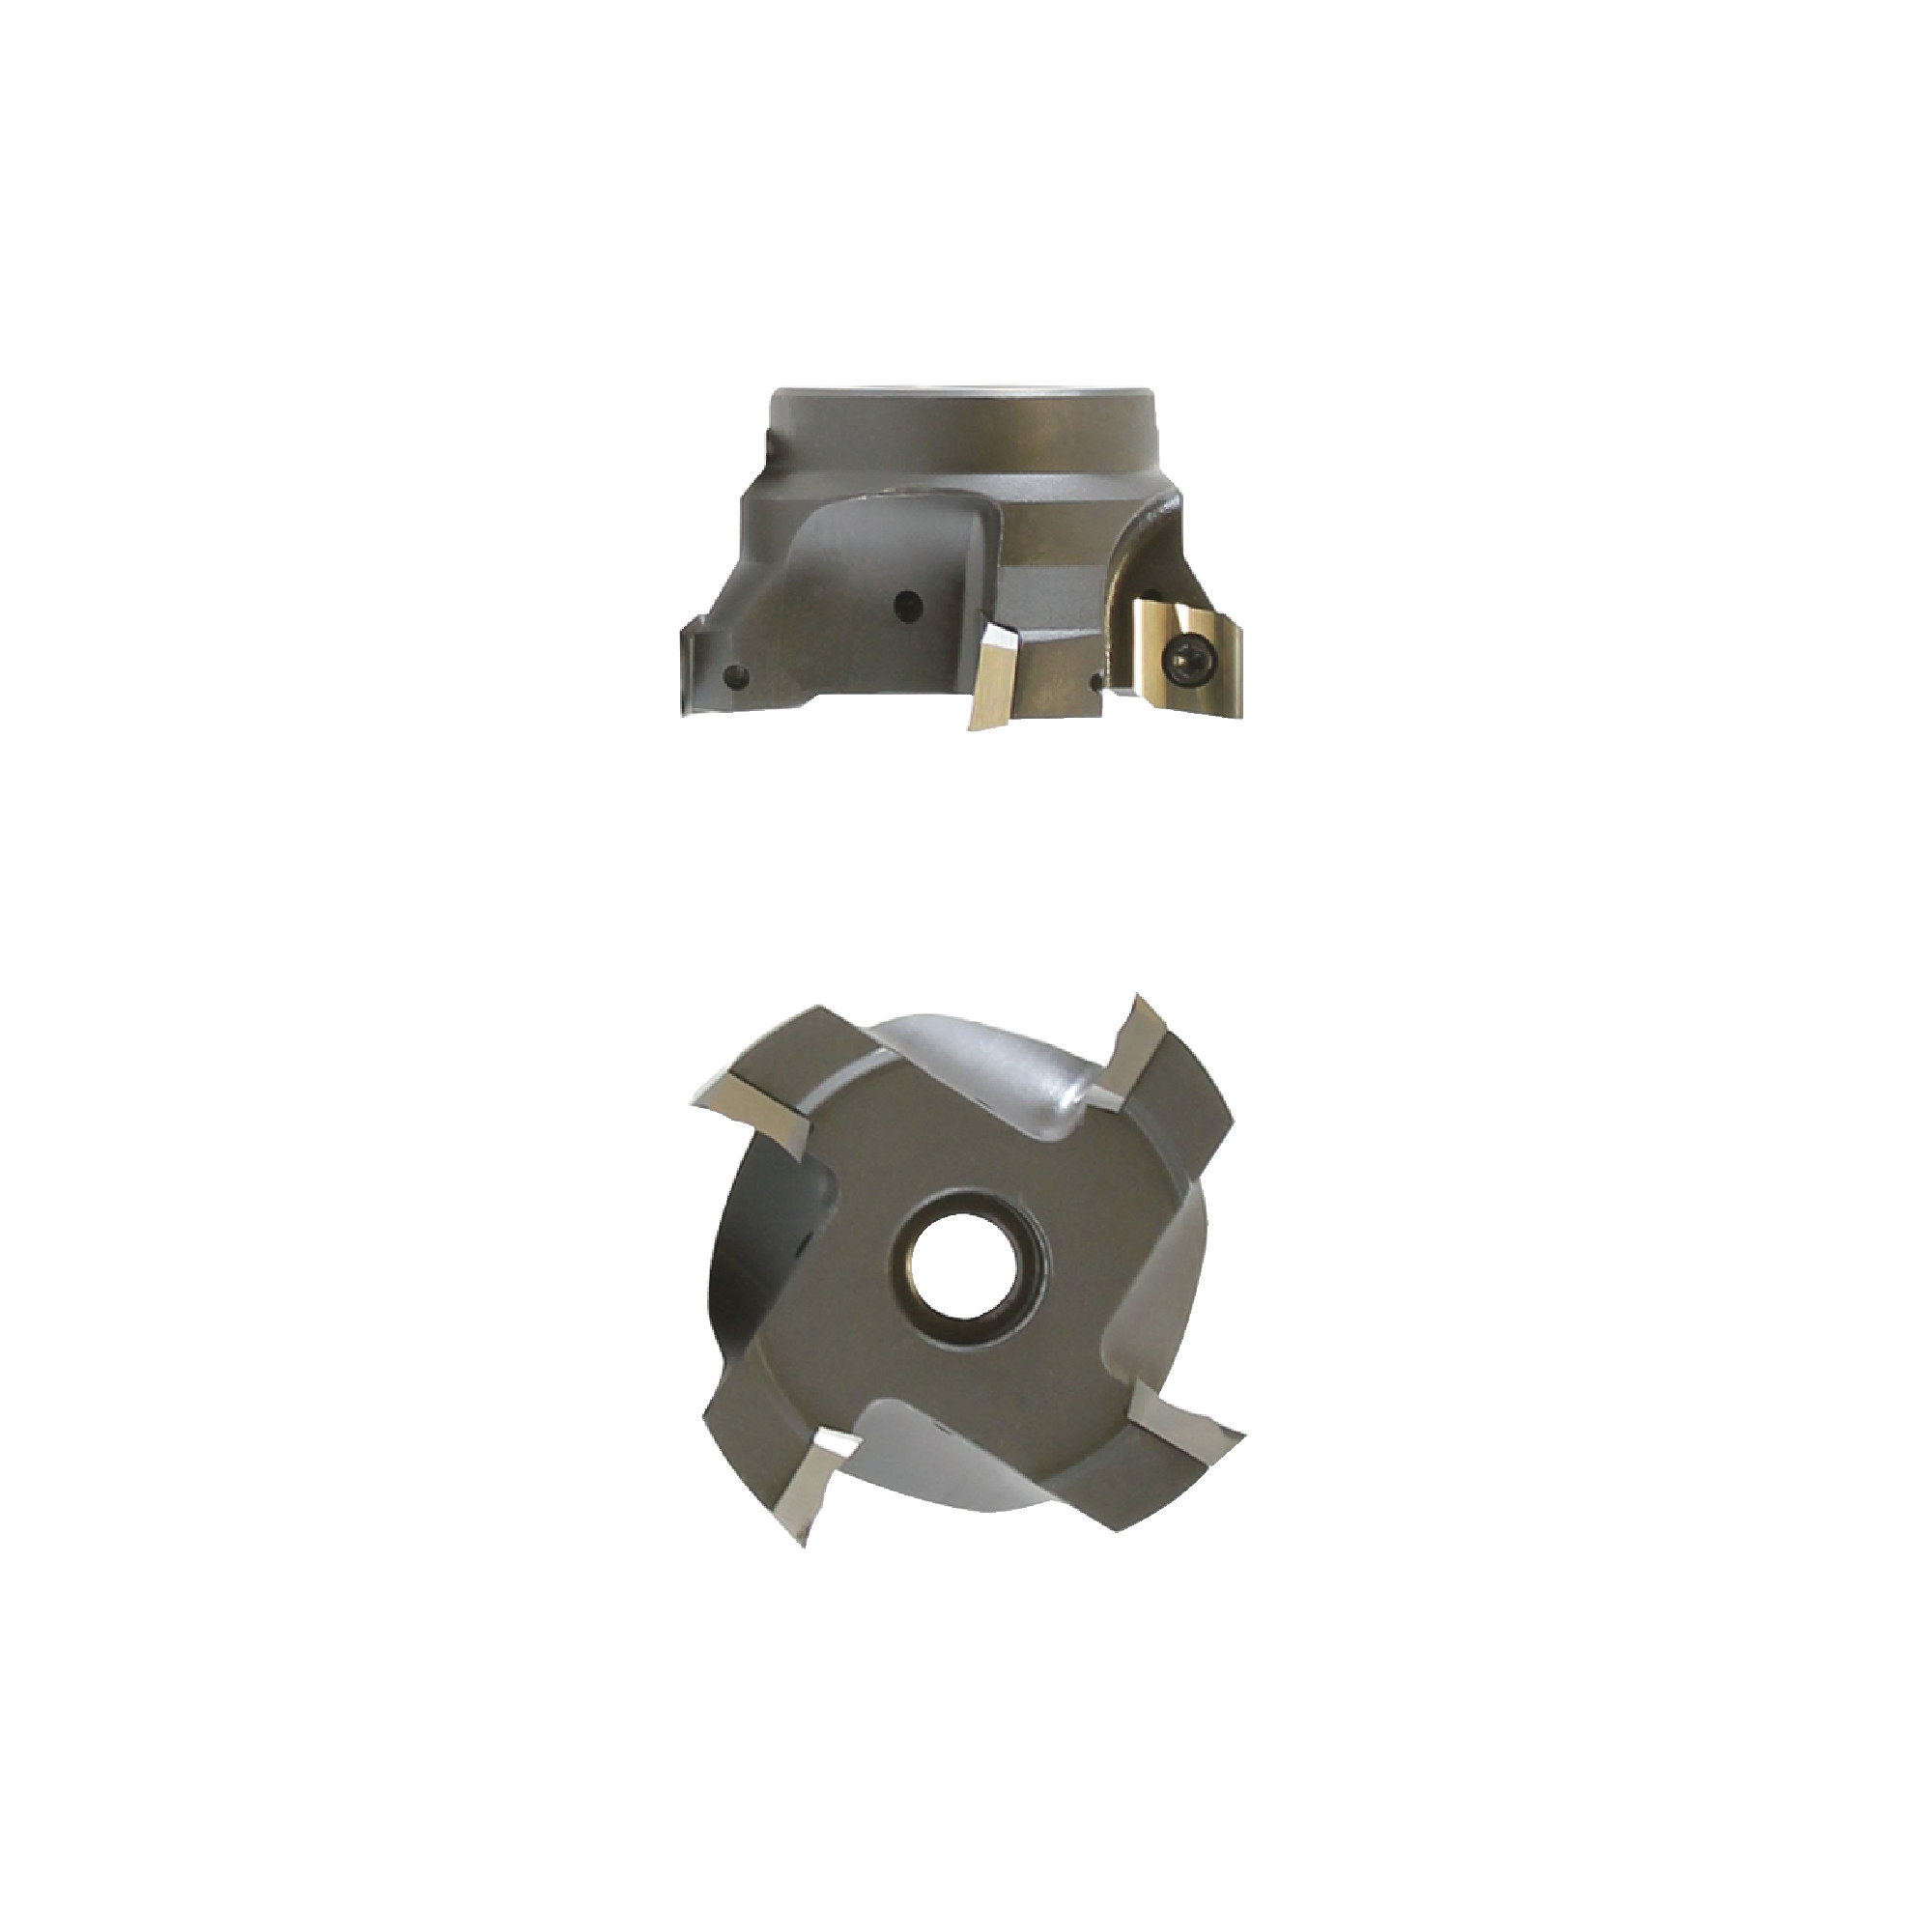 """AB TOOLS - SHELL250 / 2.500"""" Face Mill for ADEH43_ Inserts / Right Hand"""